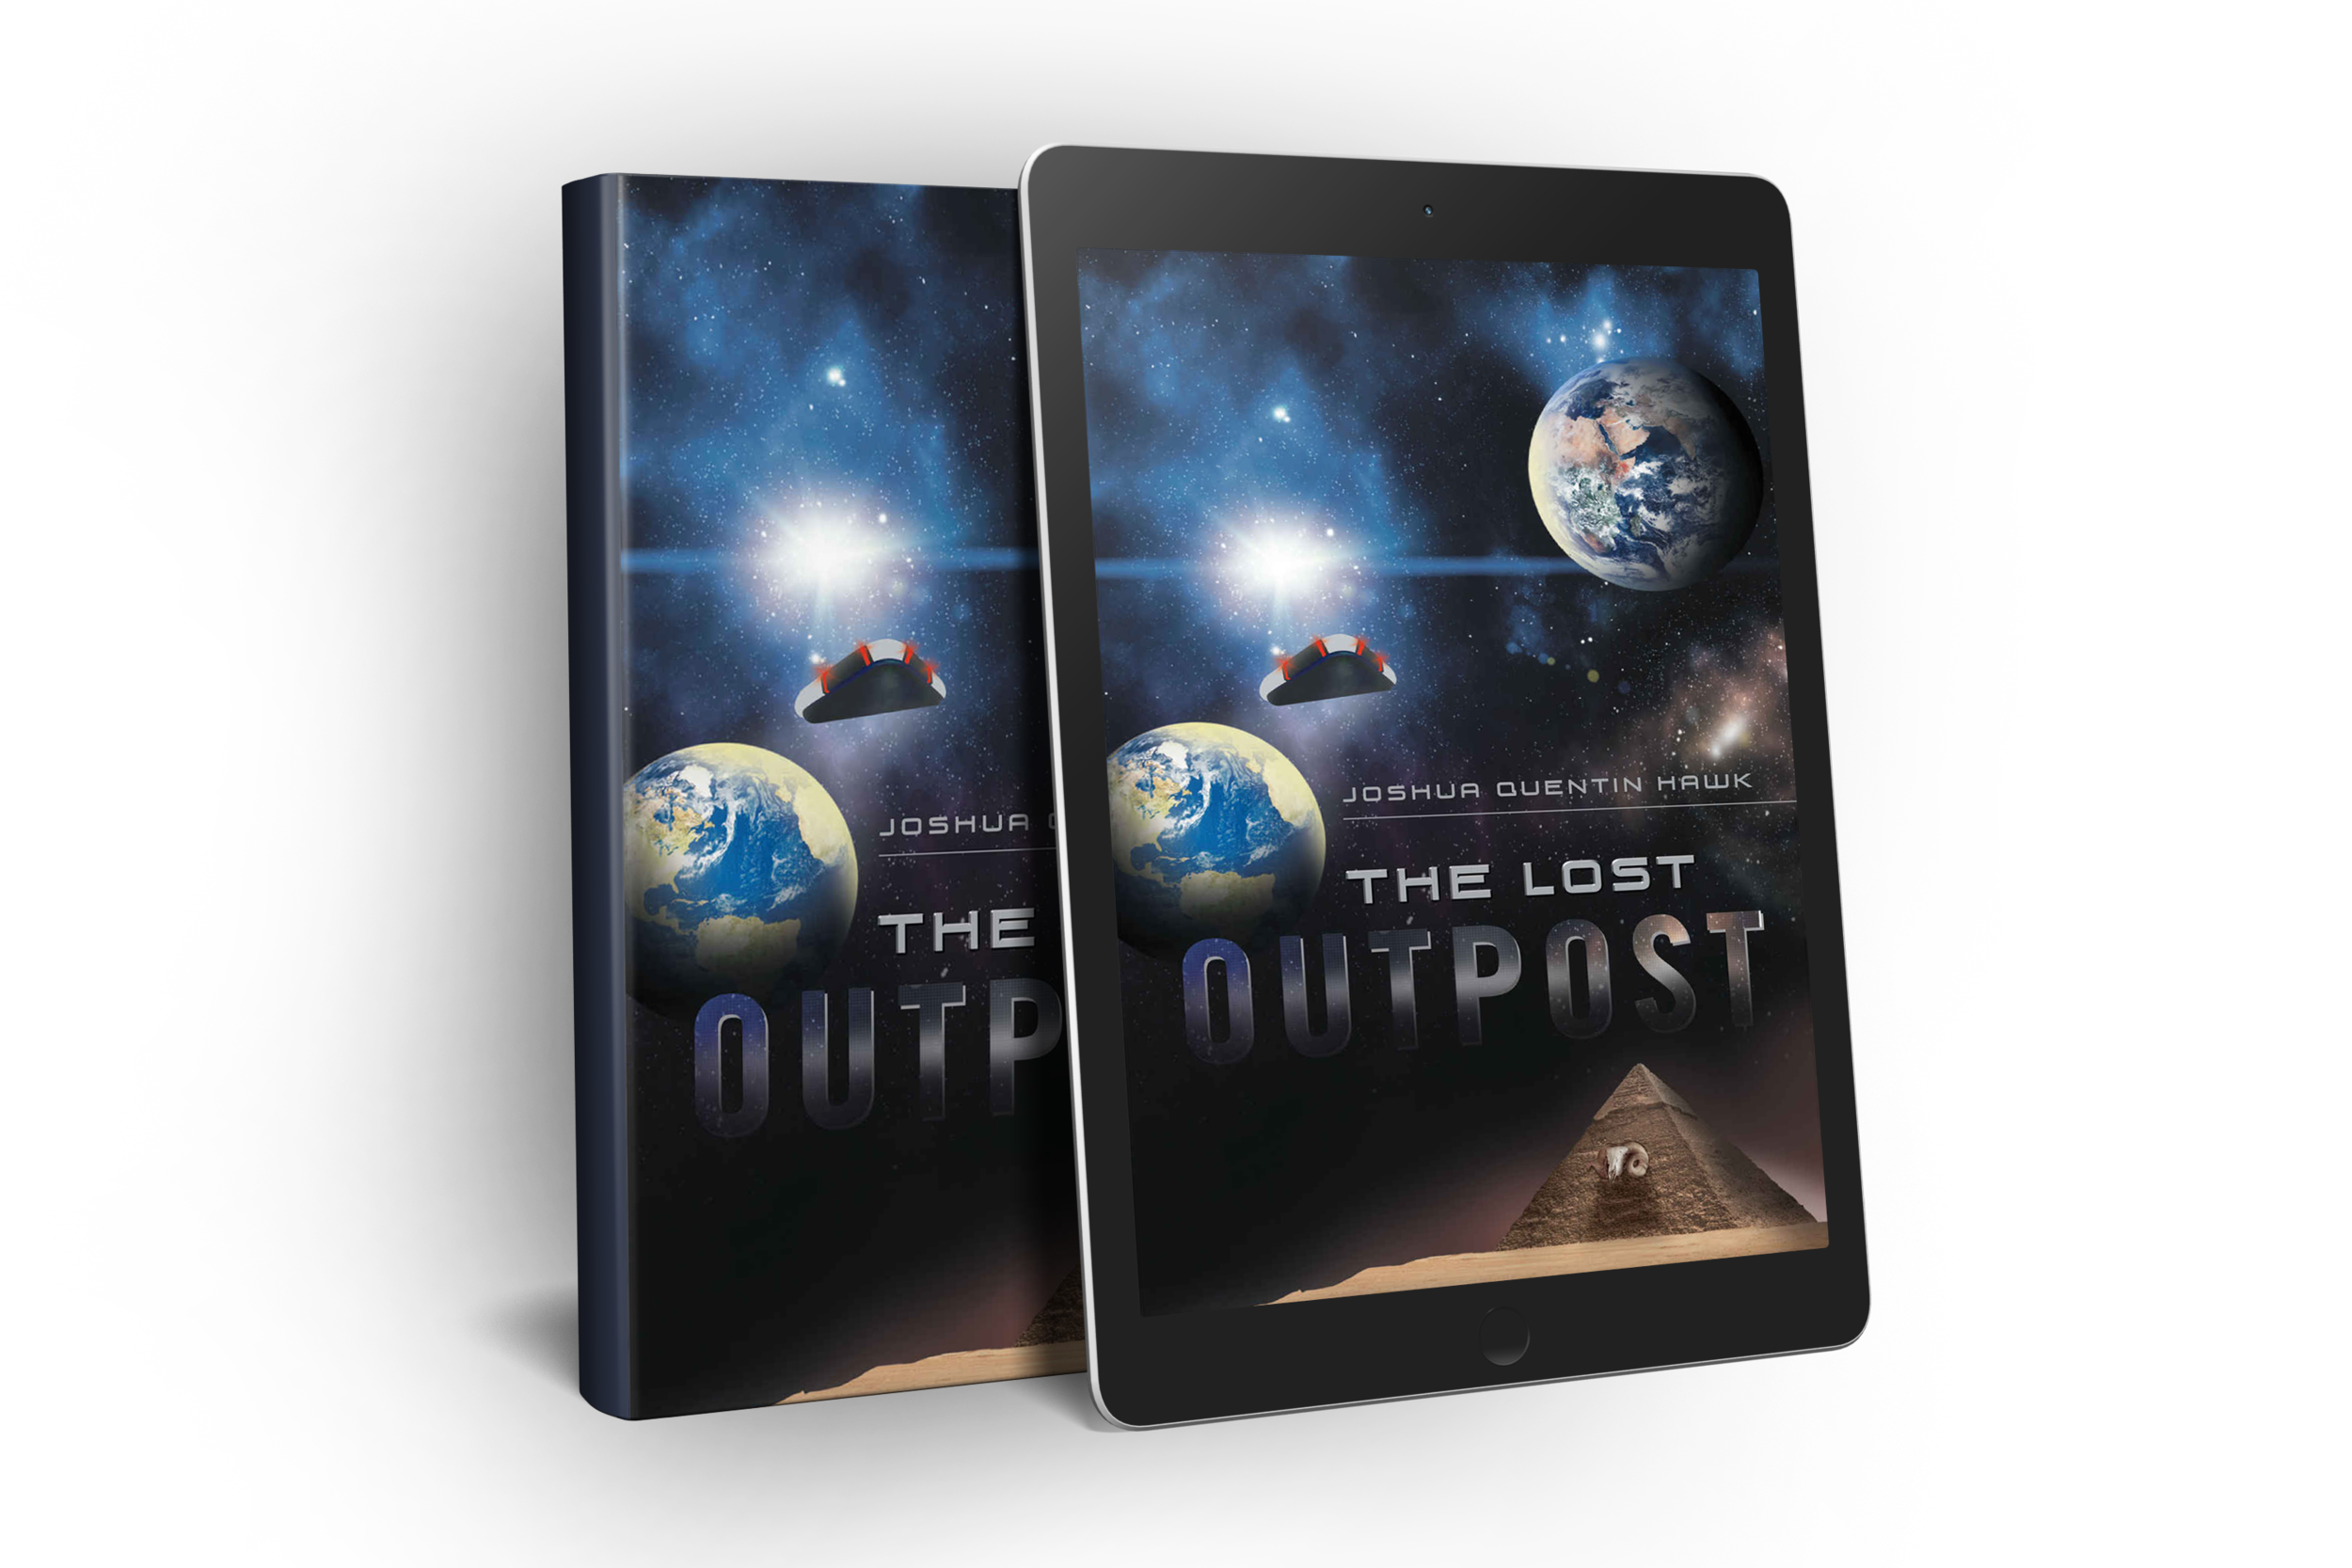 cover for the outpost.png